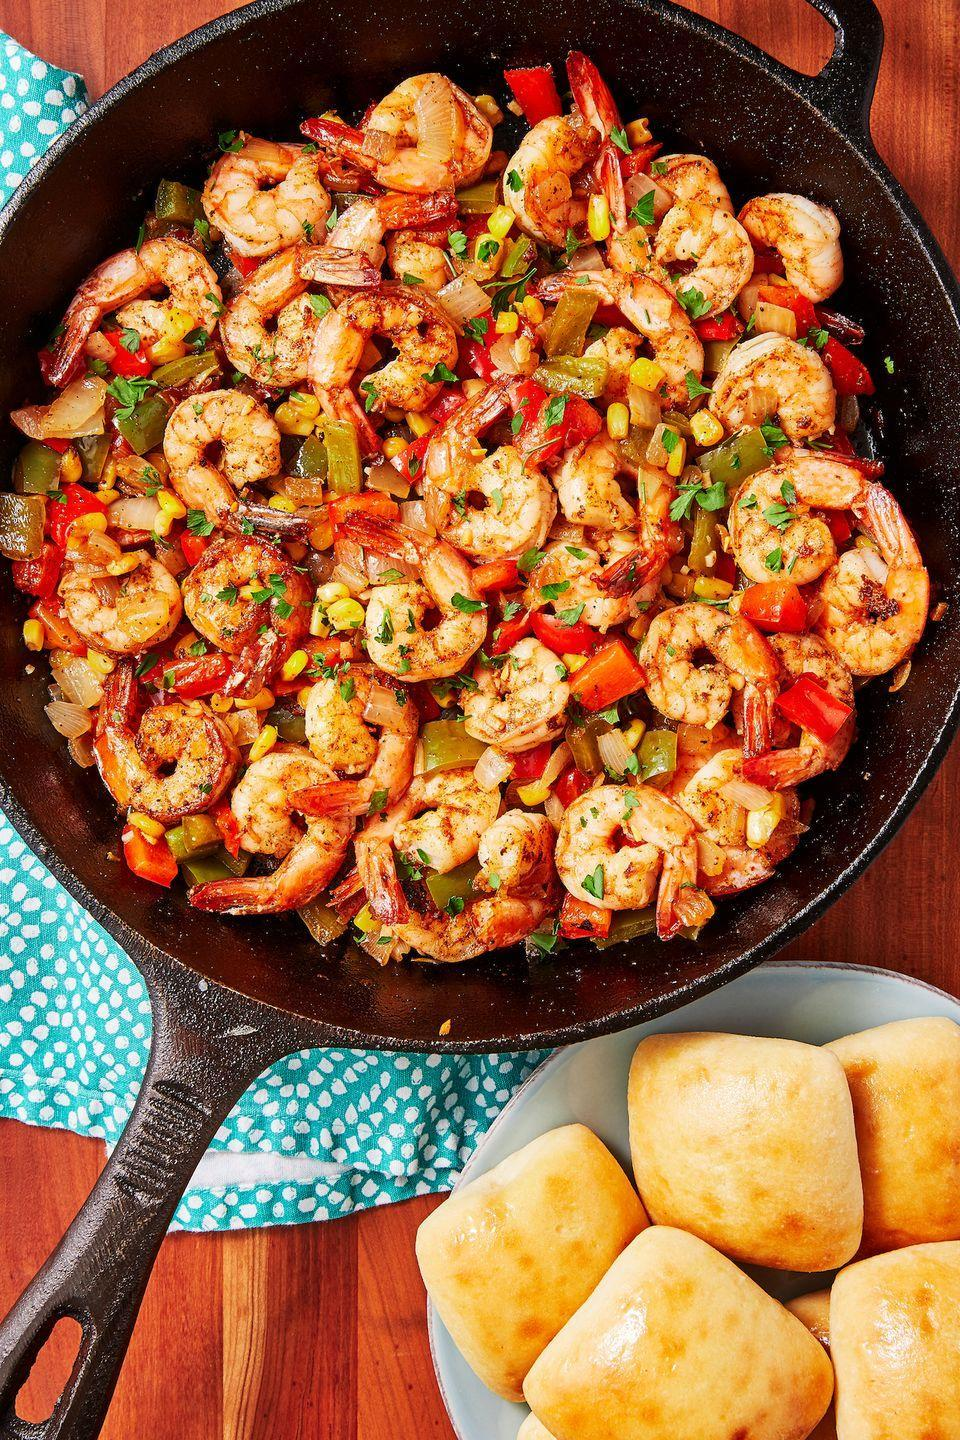 "<p>Spicy shrimp mixed with peppers, corn, and onion just speaks to us. </p><p>Get the recipe from <a href=""https://www.delish.com/cooking/recipe-ideas/recipes/a51607/cajun-shrimp-recipe/"" rel=""nofollow noopener"" target=""_blank"" data-ylk=""slk:Delish"" class=""link rapid-noclick-resp"">Delish</a>. </p>"